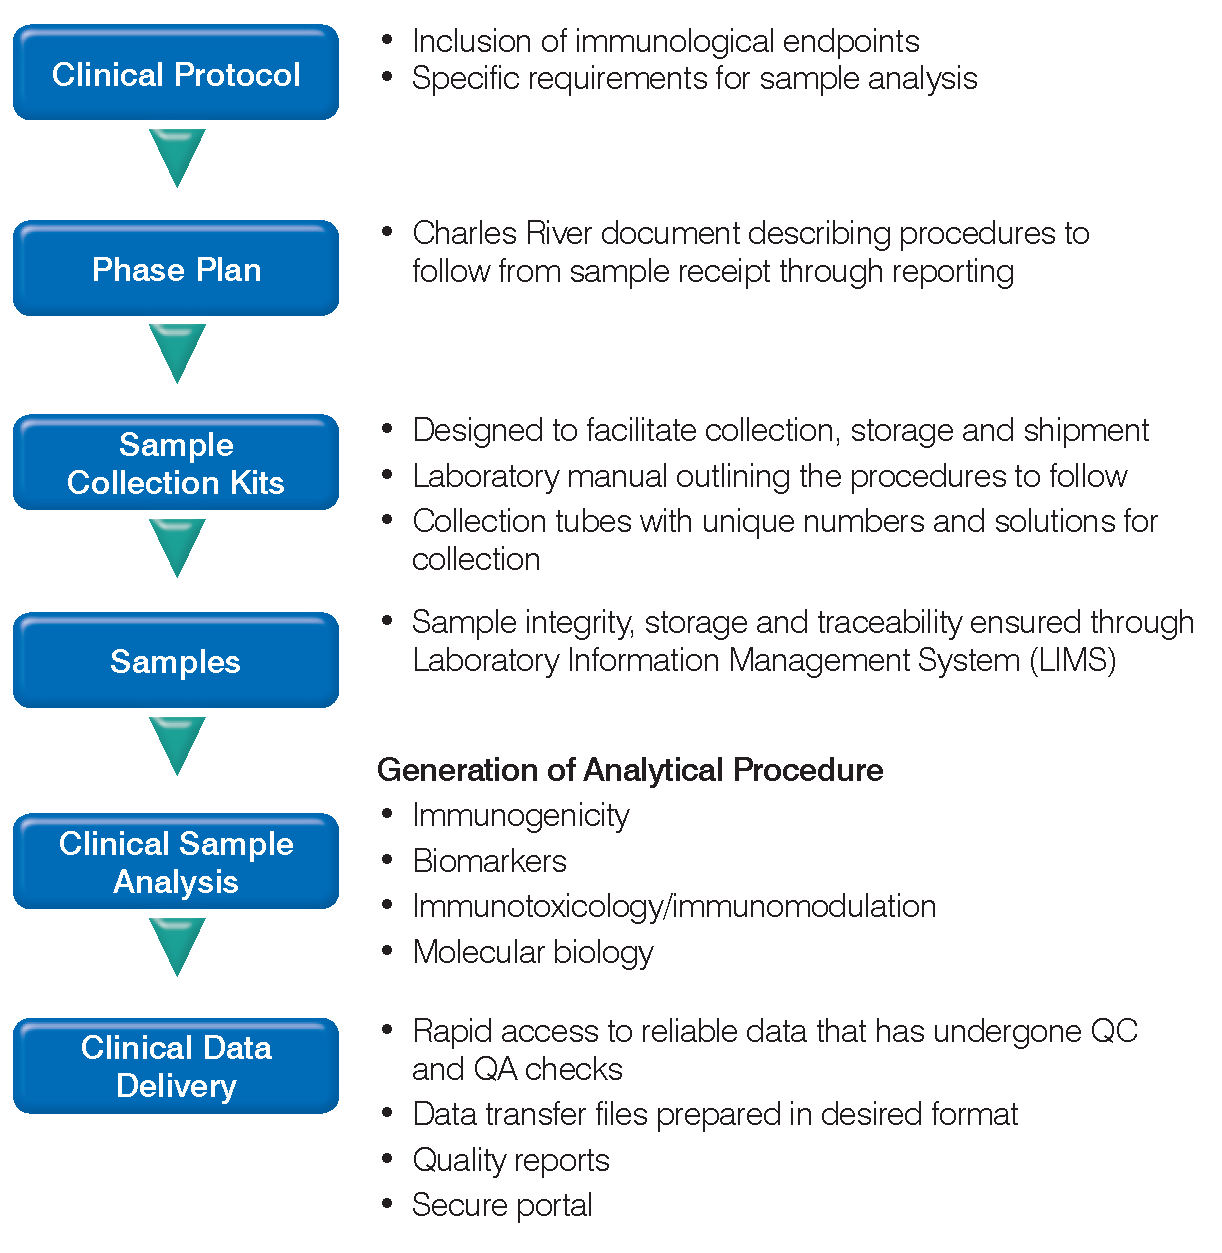 Steps involved in clinical sample analysis